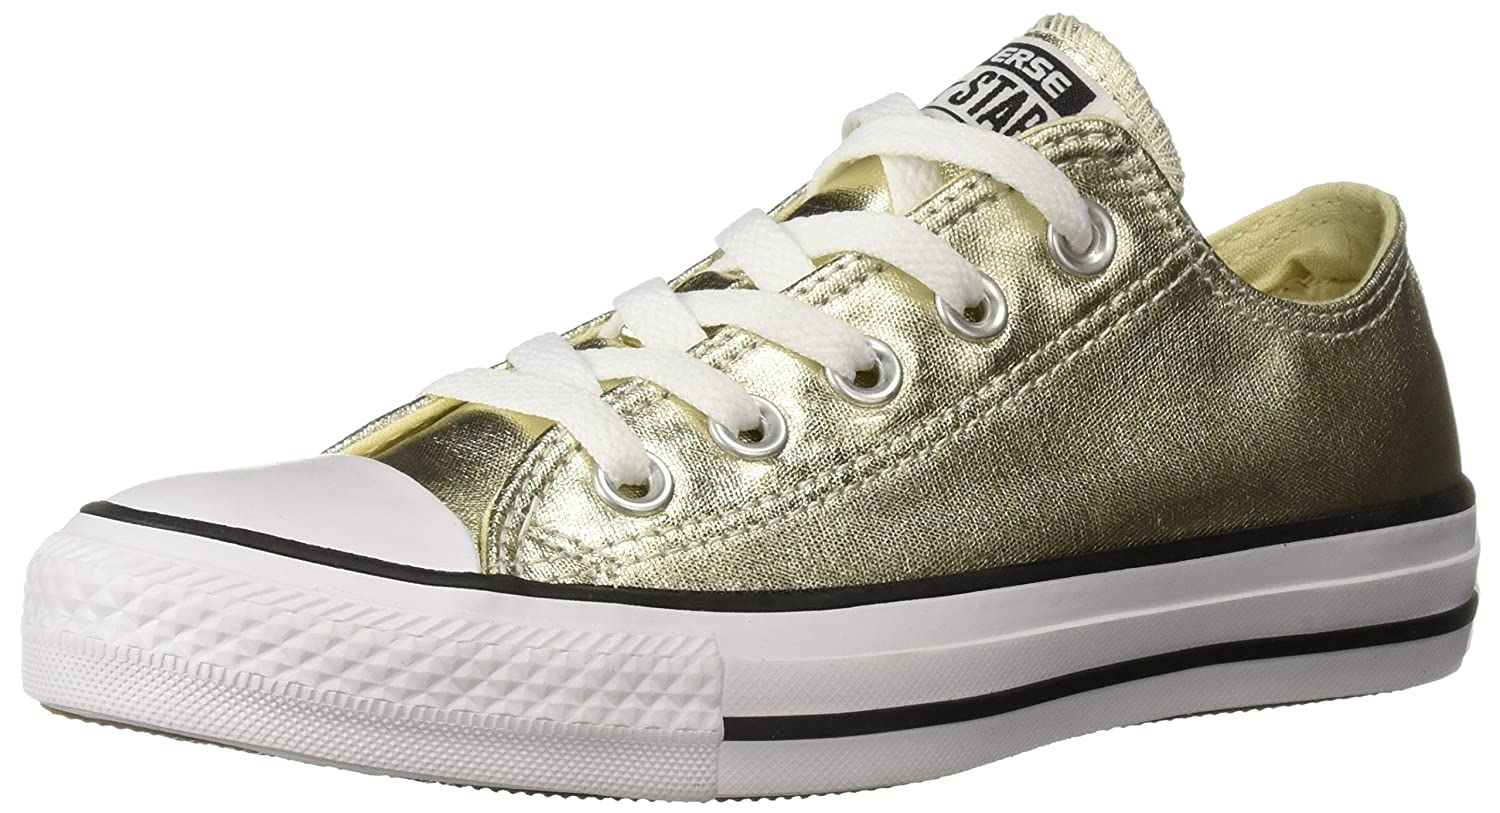 Converse Men's Chuck Taylor All Star Seasonal Ox B01C9JEAGO 11.5 B(M)US WOMENS /9.5 D(M) US MEN|Light Gold White Black